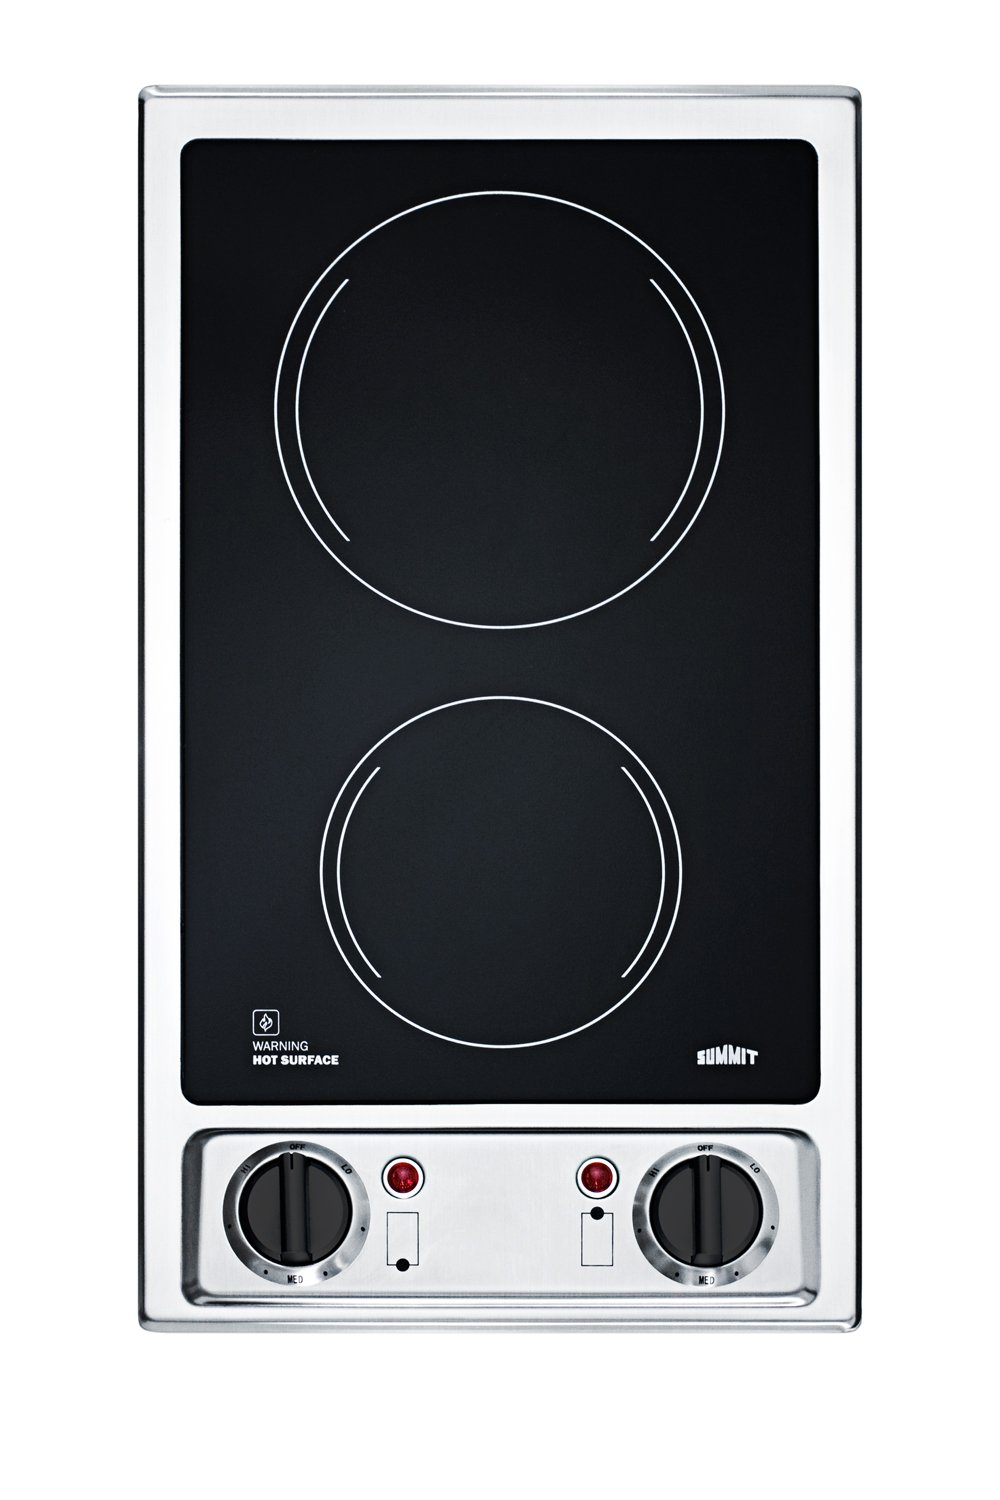 """Summit FBA CR2B120 115V 2-Burner 12"""" Radiant Cooktop with Stainless Steel Trim for Built-in Installation, Black"""